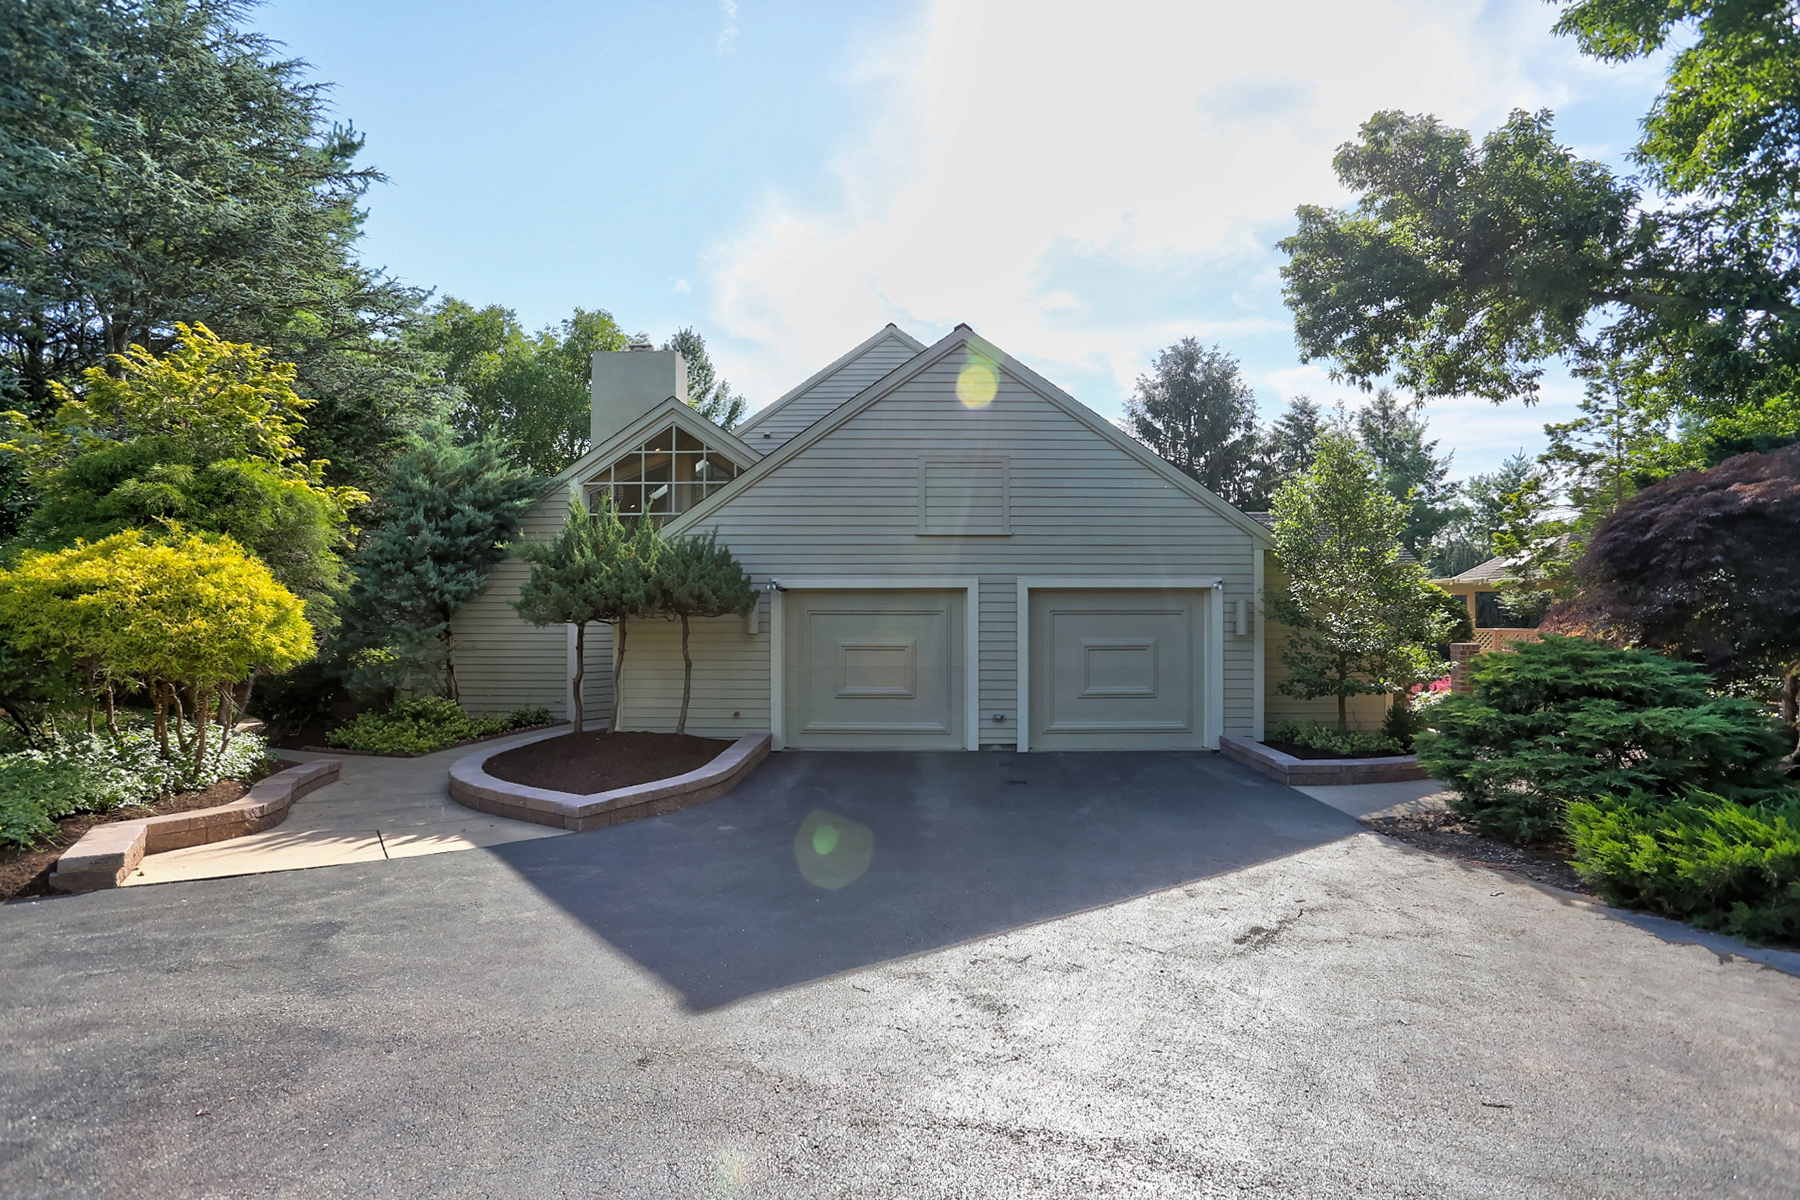 Additional photo for property listing at 1302 Beaconfield Lane 1302 Beaconfield Lane Lancaster, Pennsylvania 17601 Estados Unidos